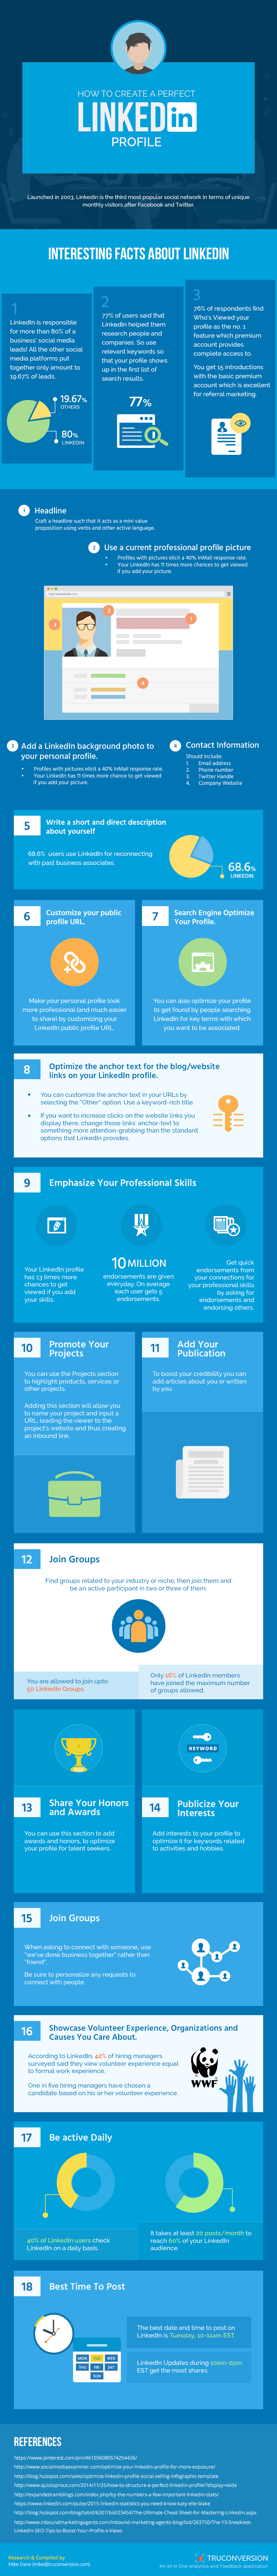 18 Tips to Create Your Perfect LinkedIn Profile (Infographic)